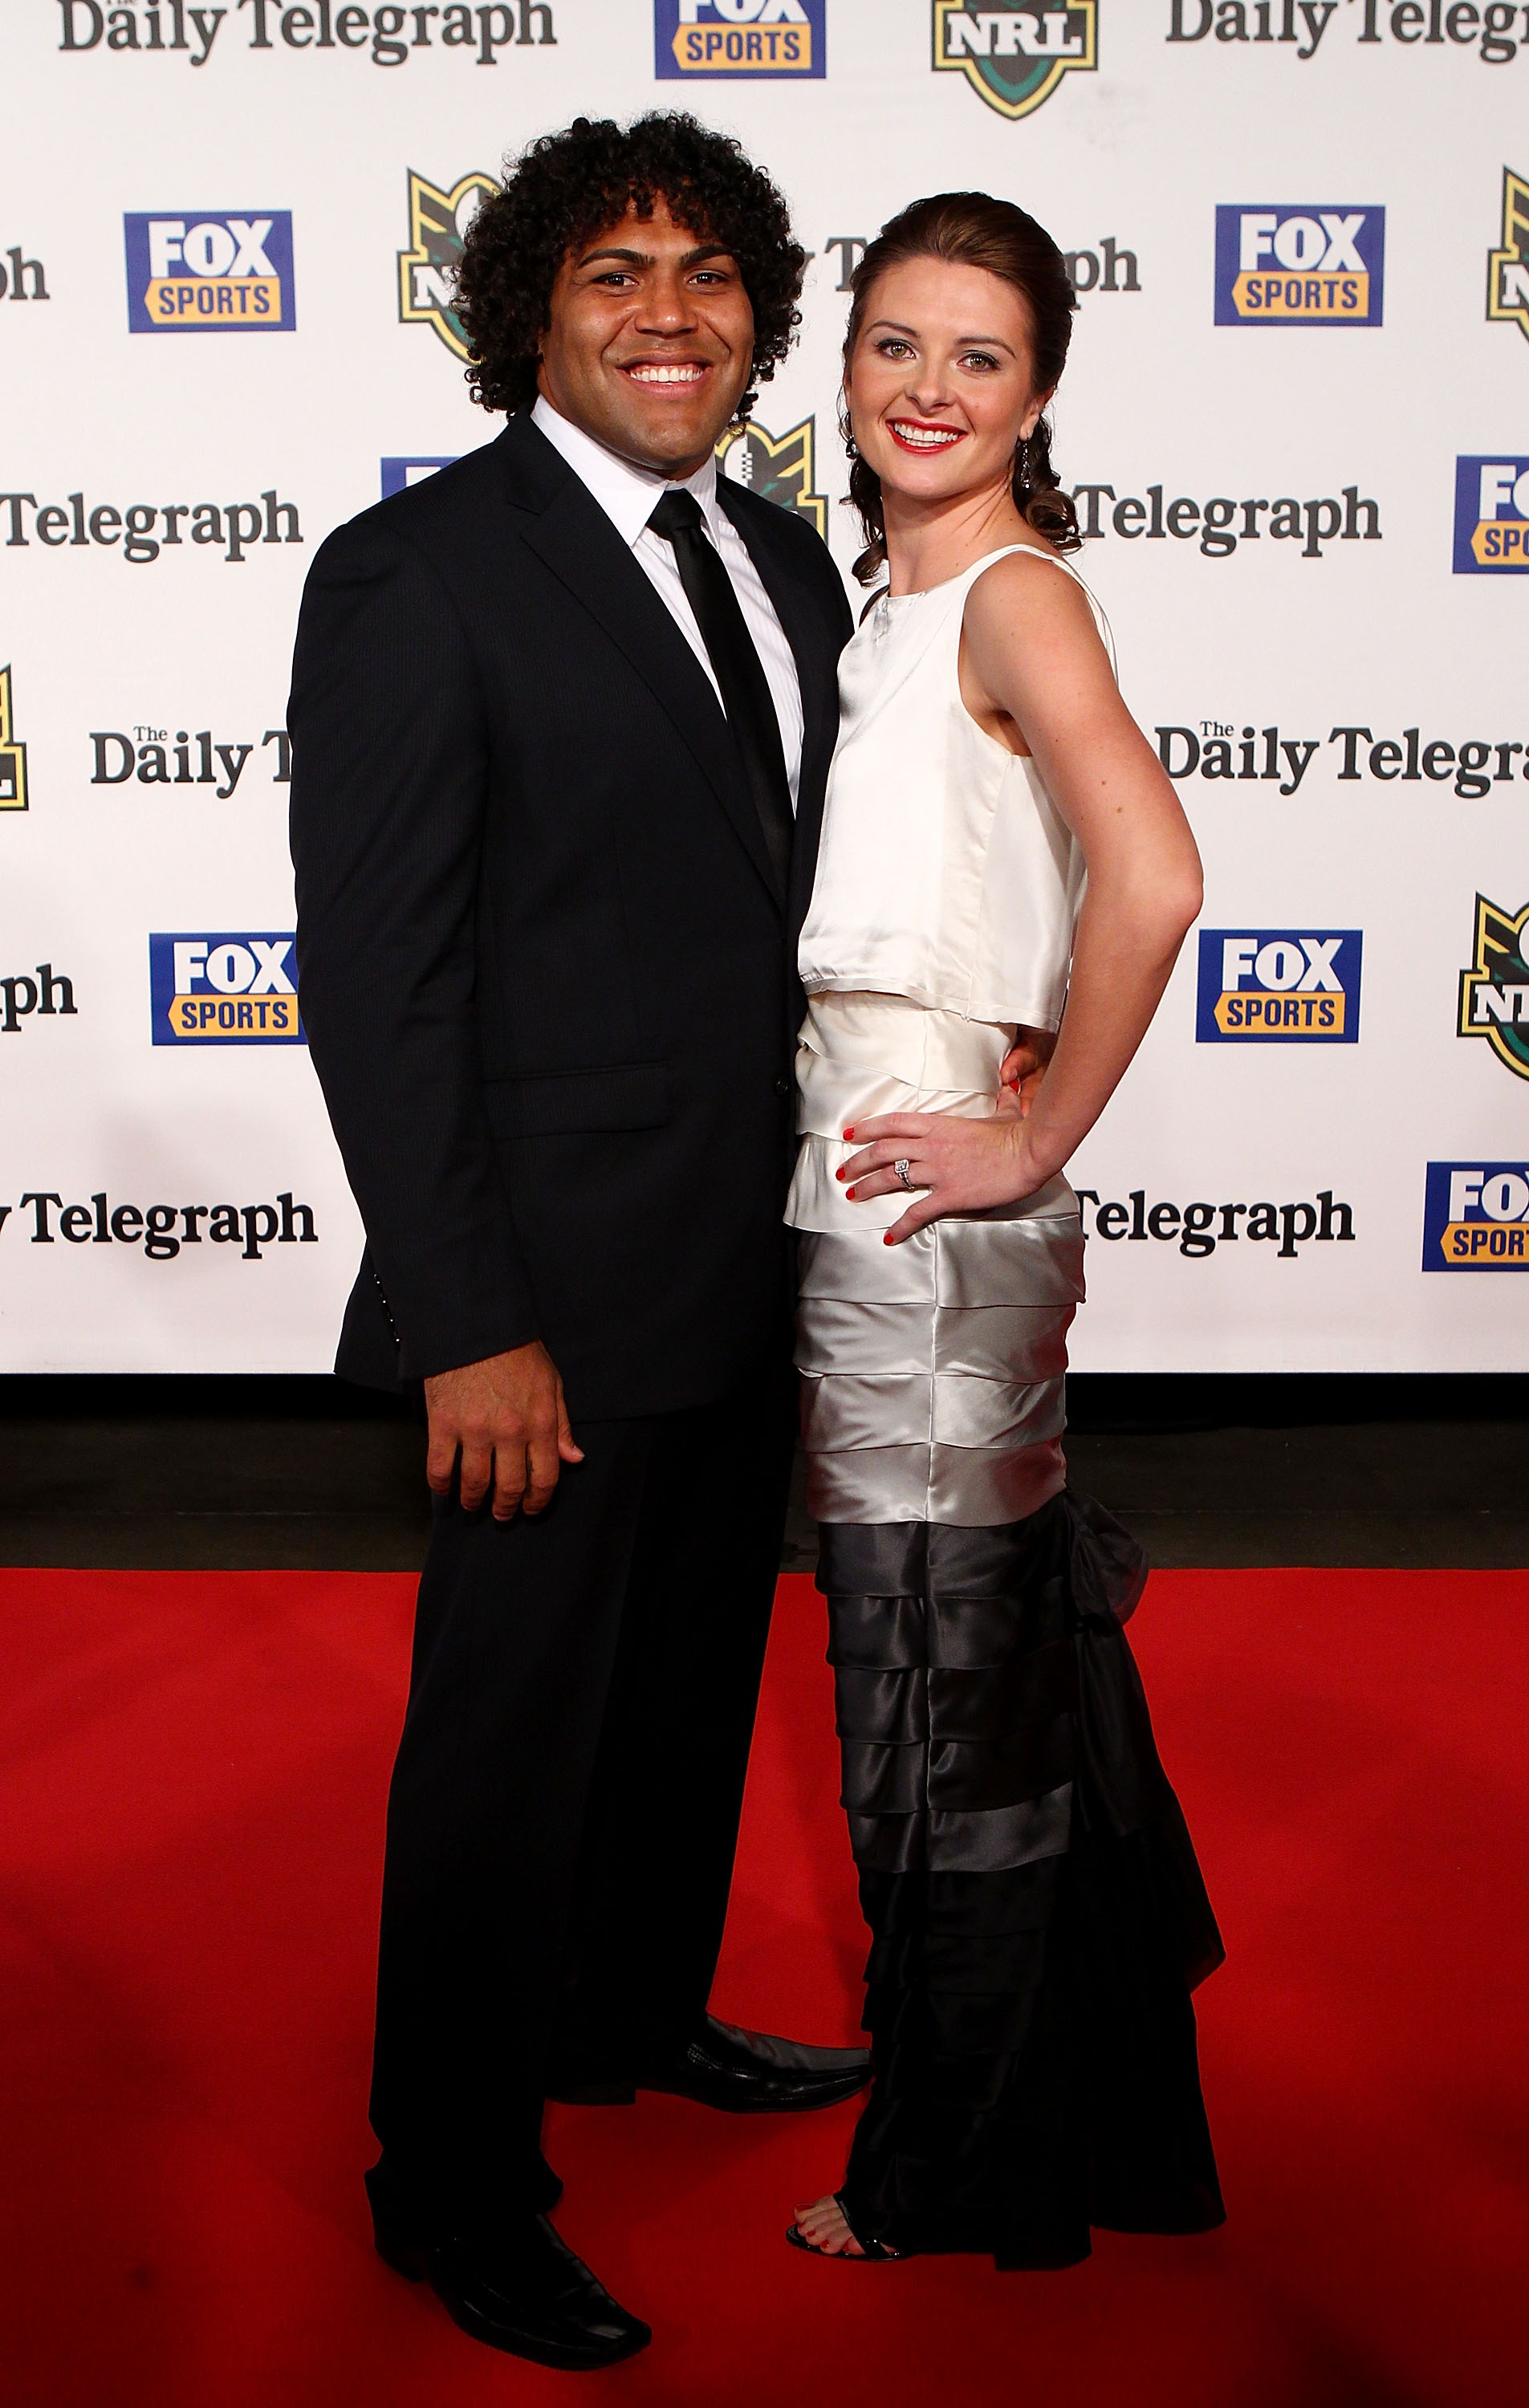 Sam Thaiday and Rachel Evans